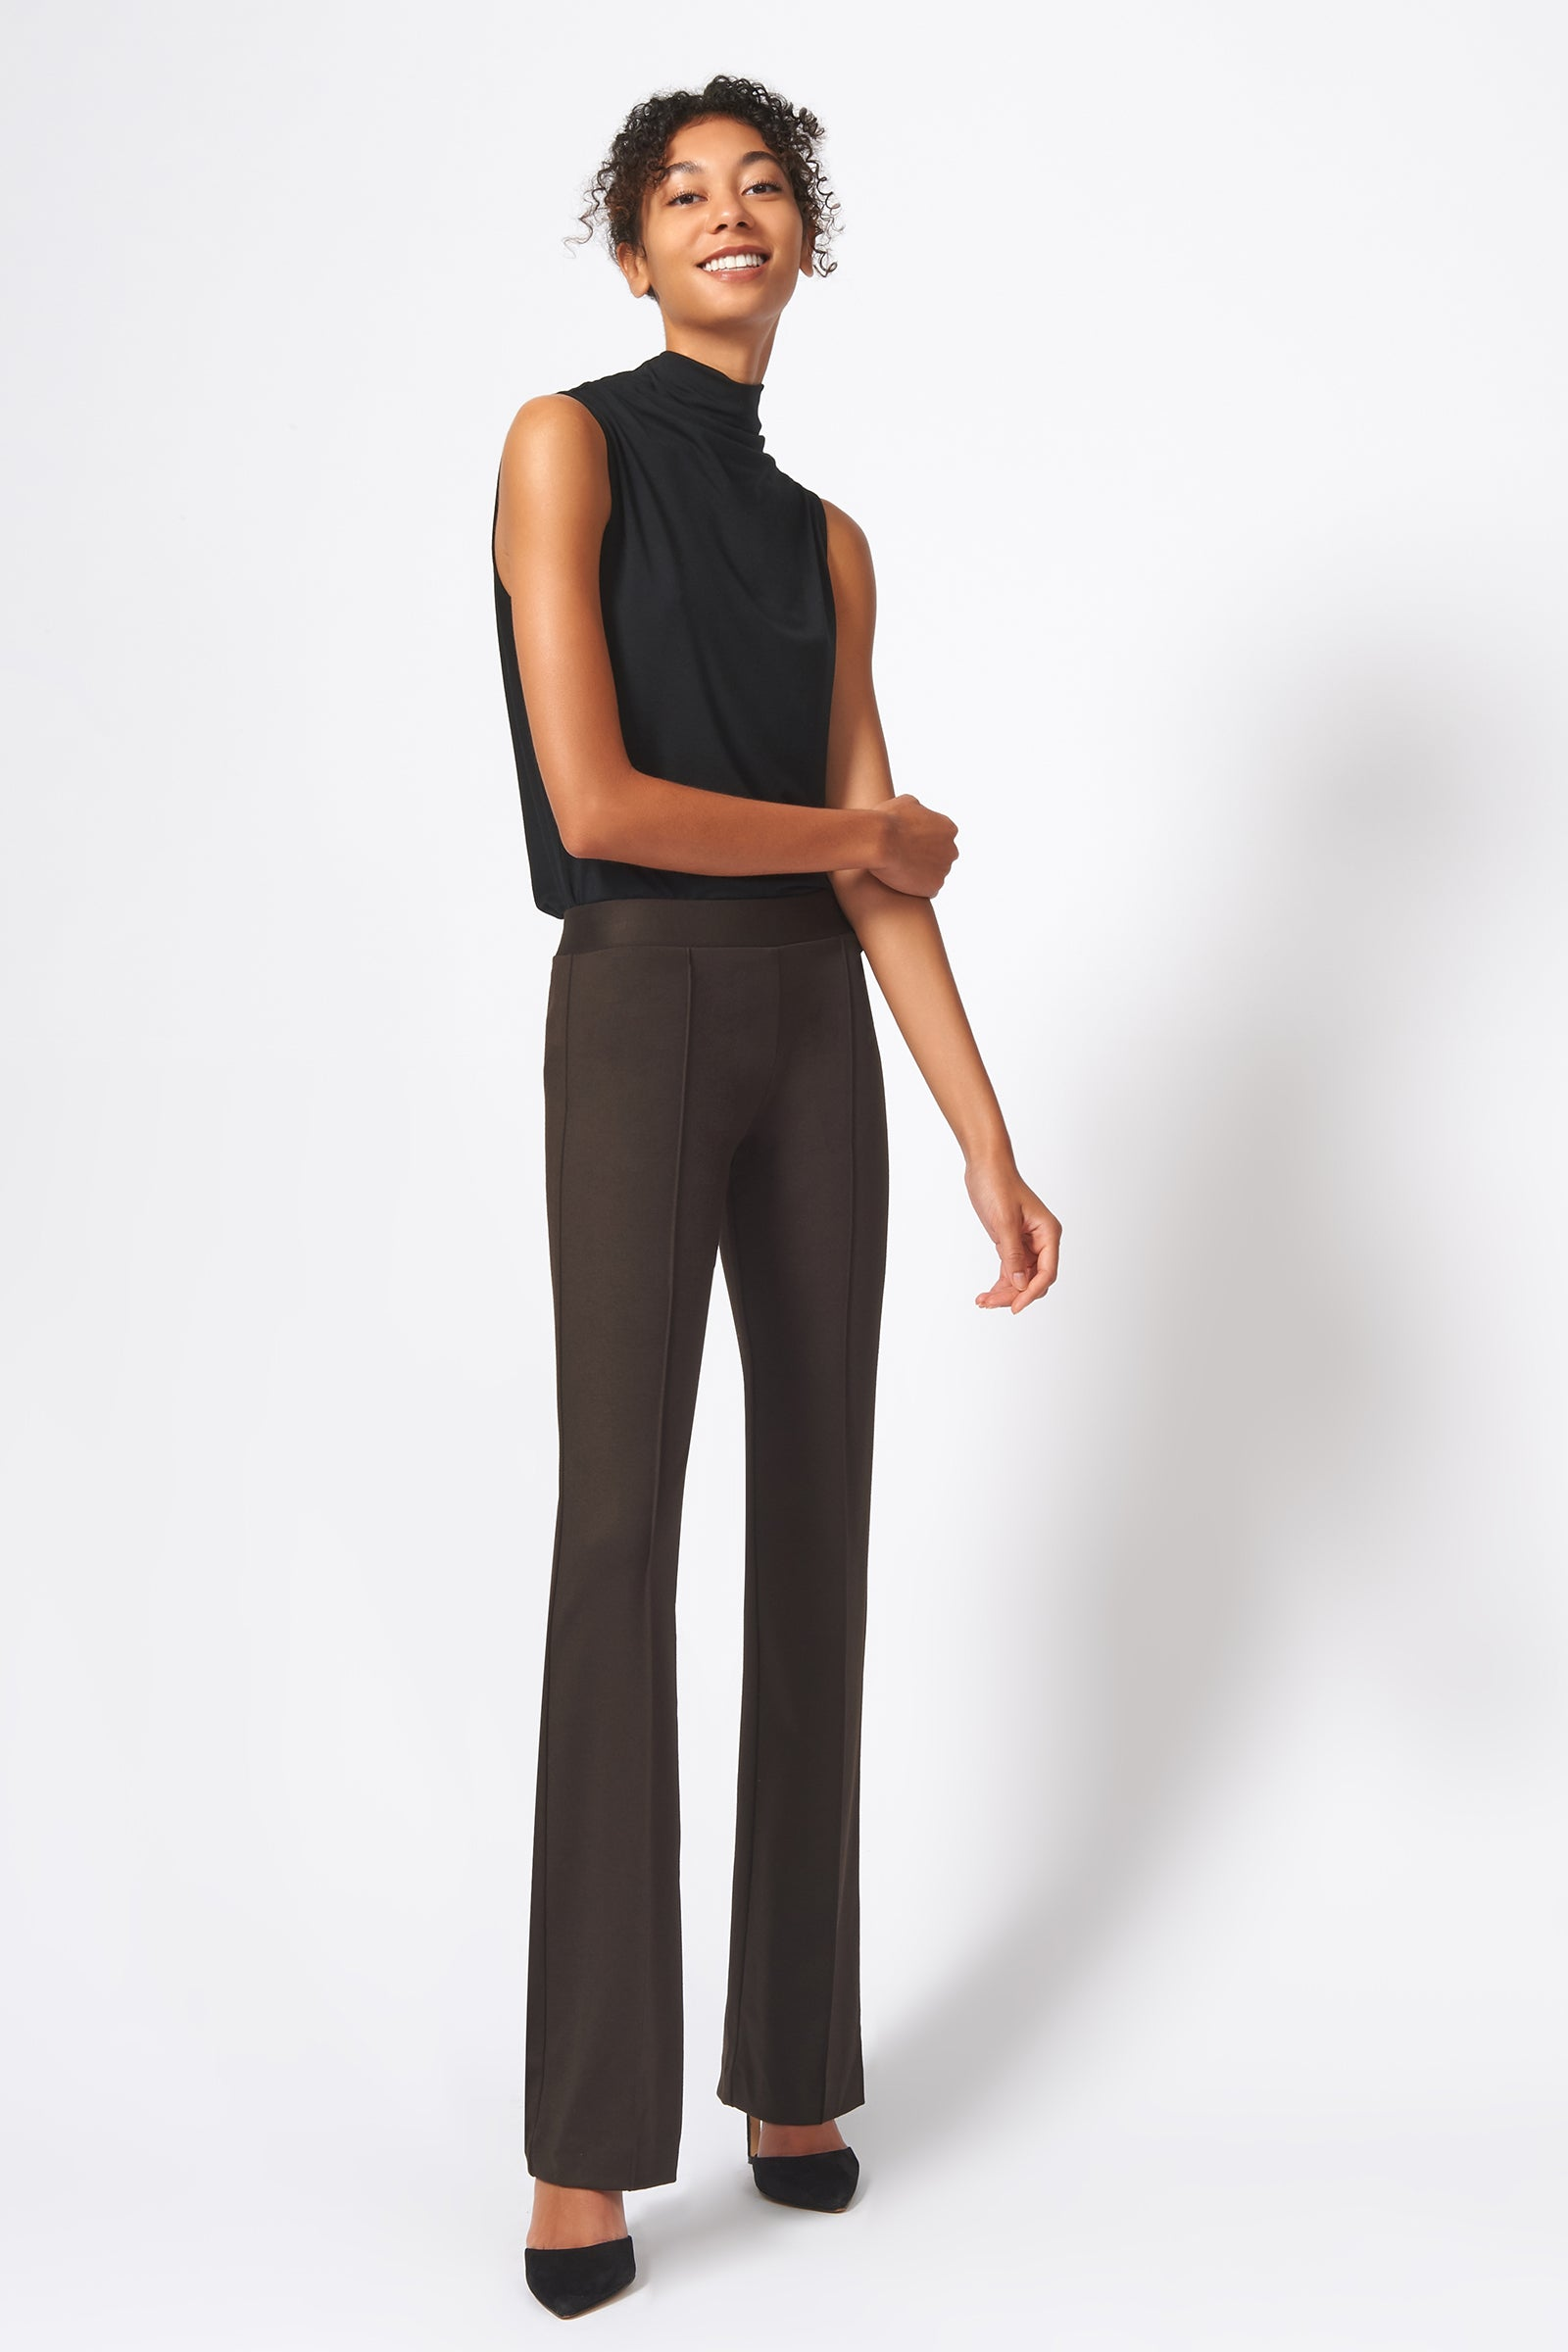 Kal Rieman Pintuck Ponte Column Pant in Espresso on Model Full Front View